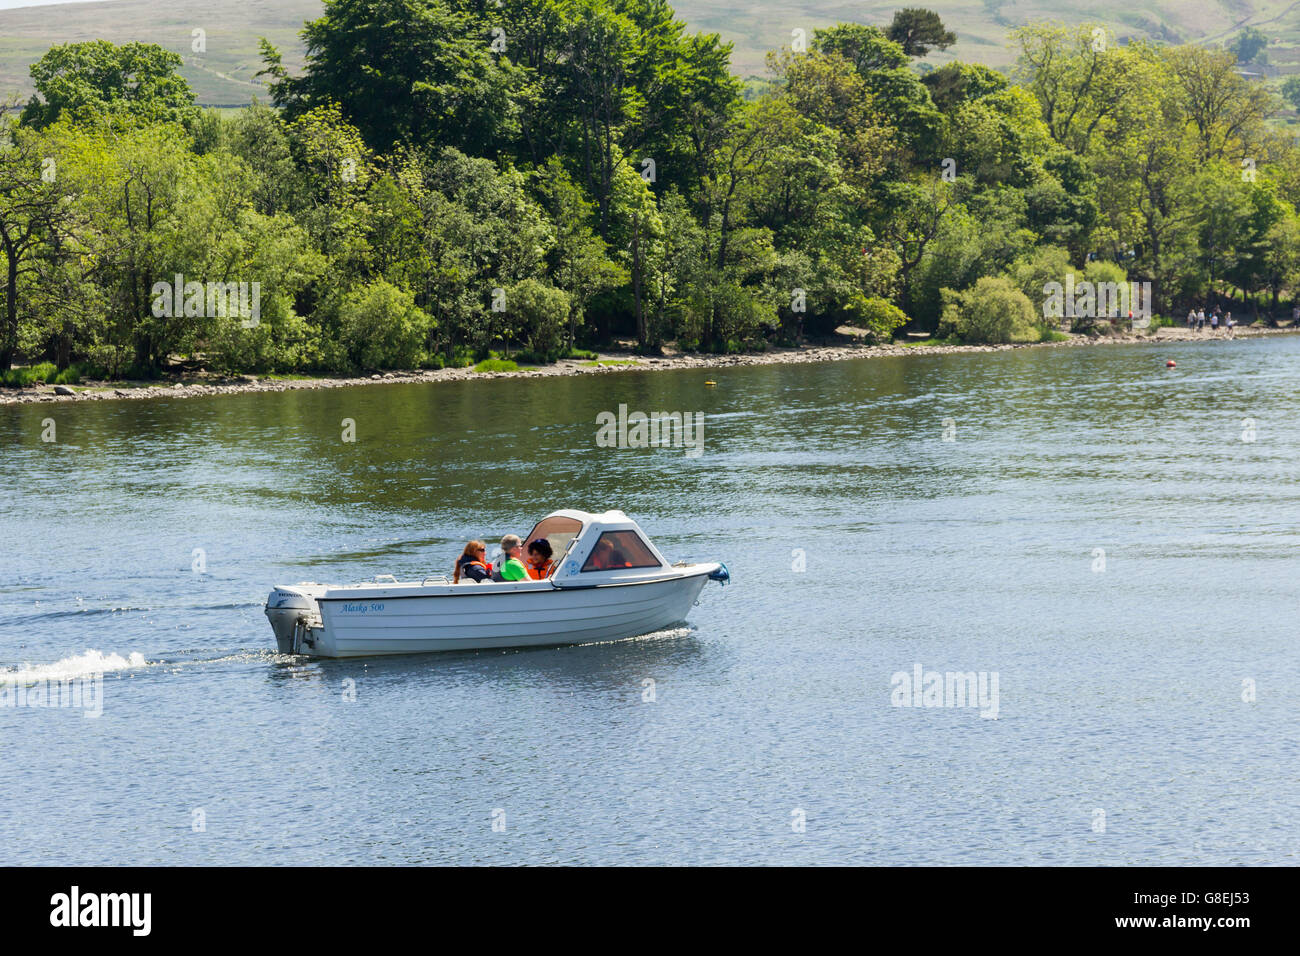 Alaska 500 hire motor boat, with several people board, on Ullswater, the second longest lake in the English Lake - Stock Image